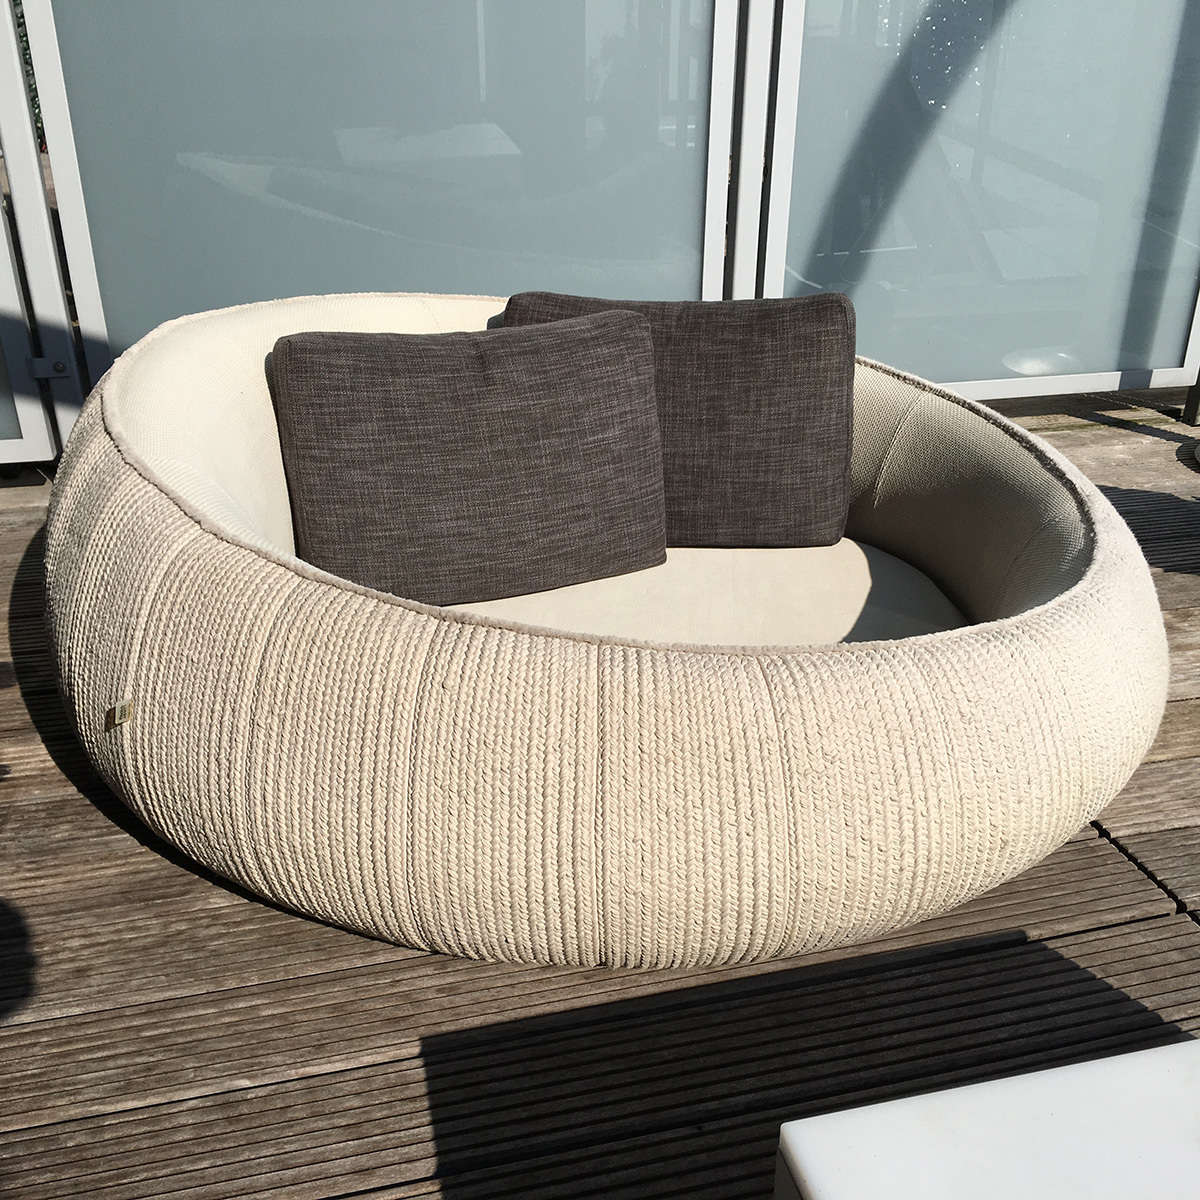 Paola Lenti Ease Hr 4